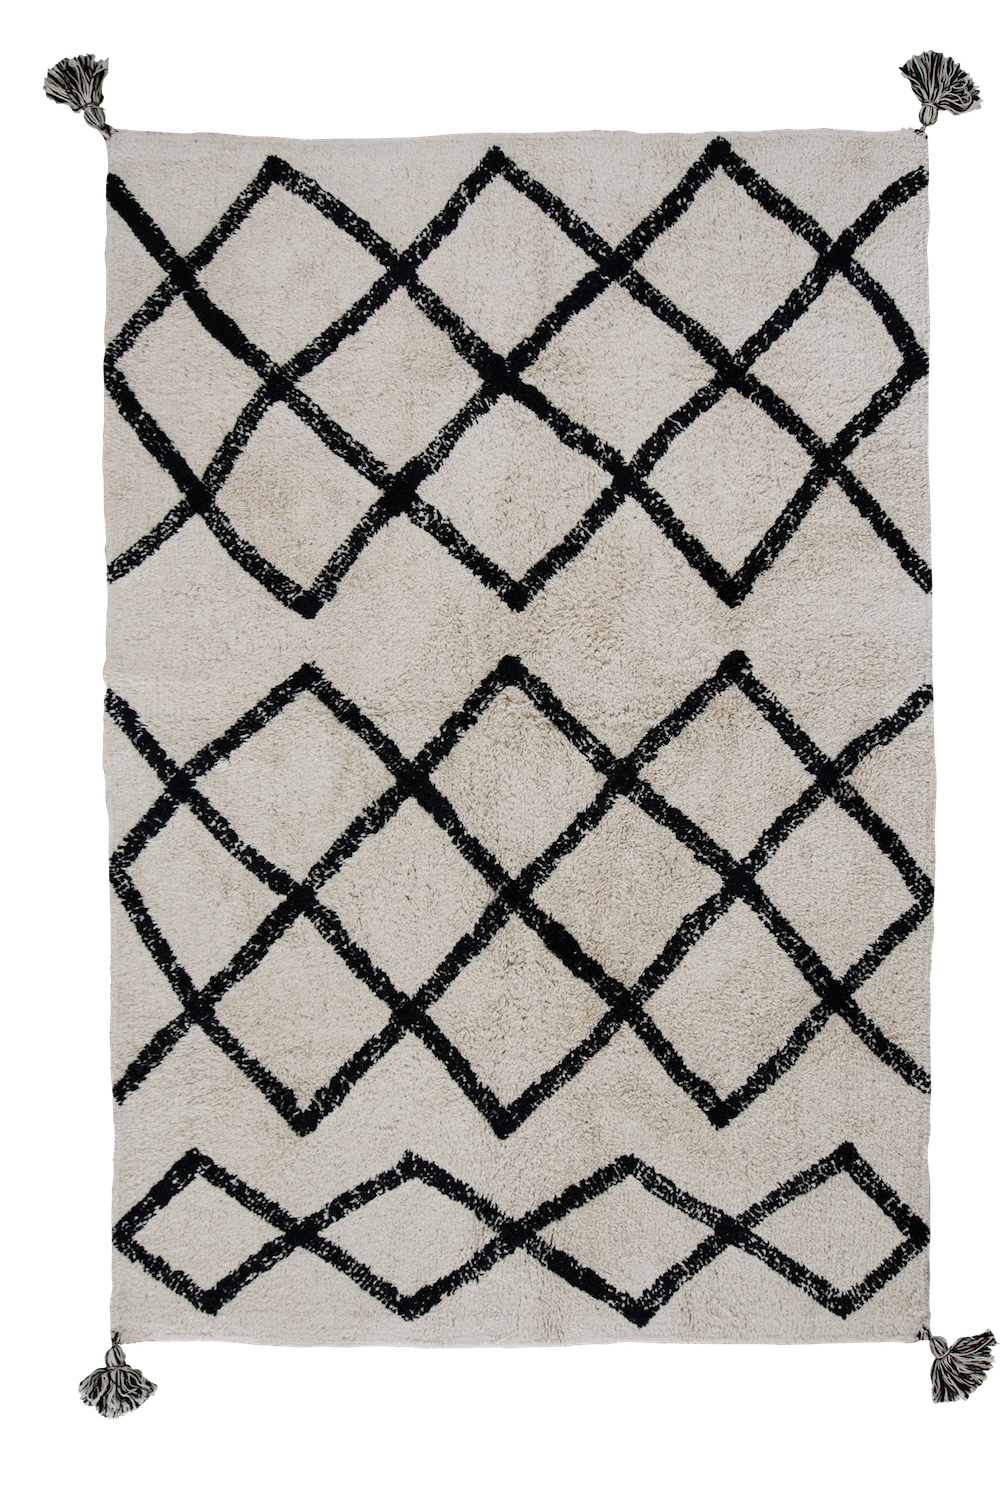 Black & White Washable Cotton Berber Rug